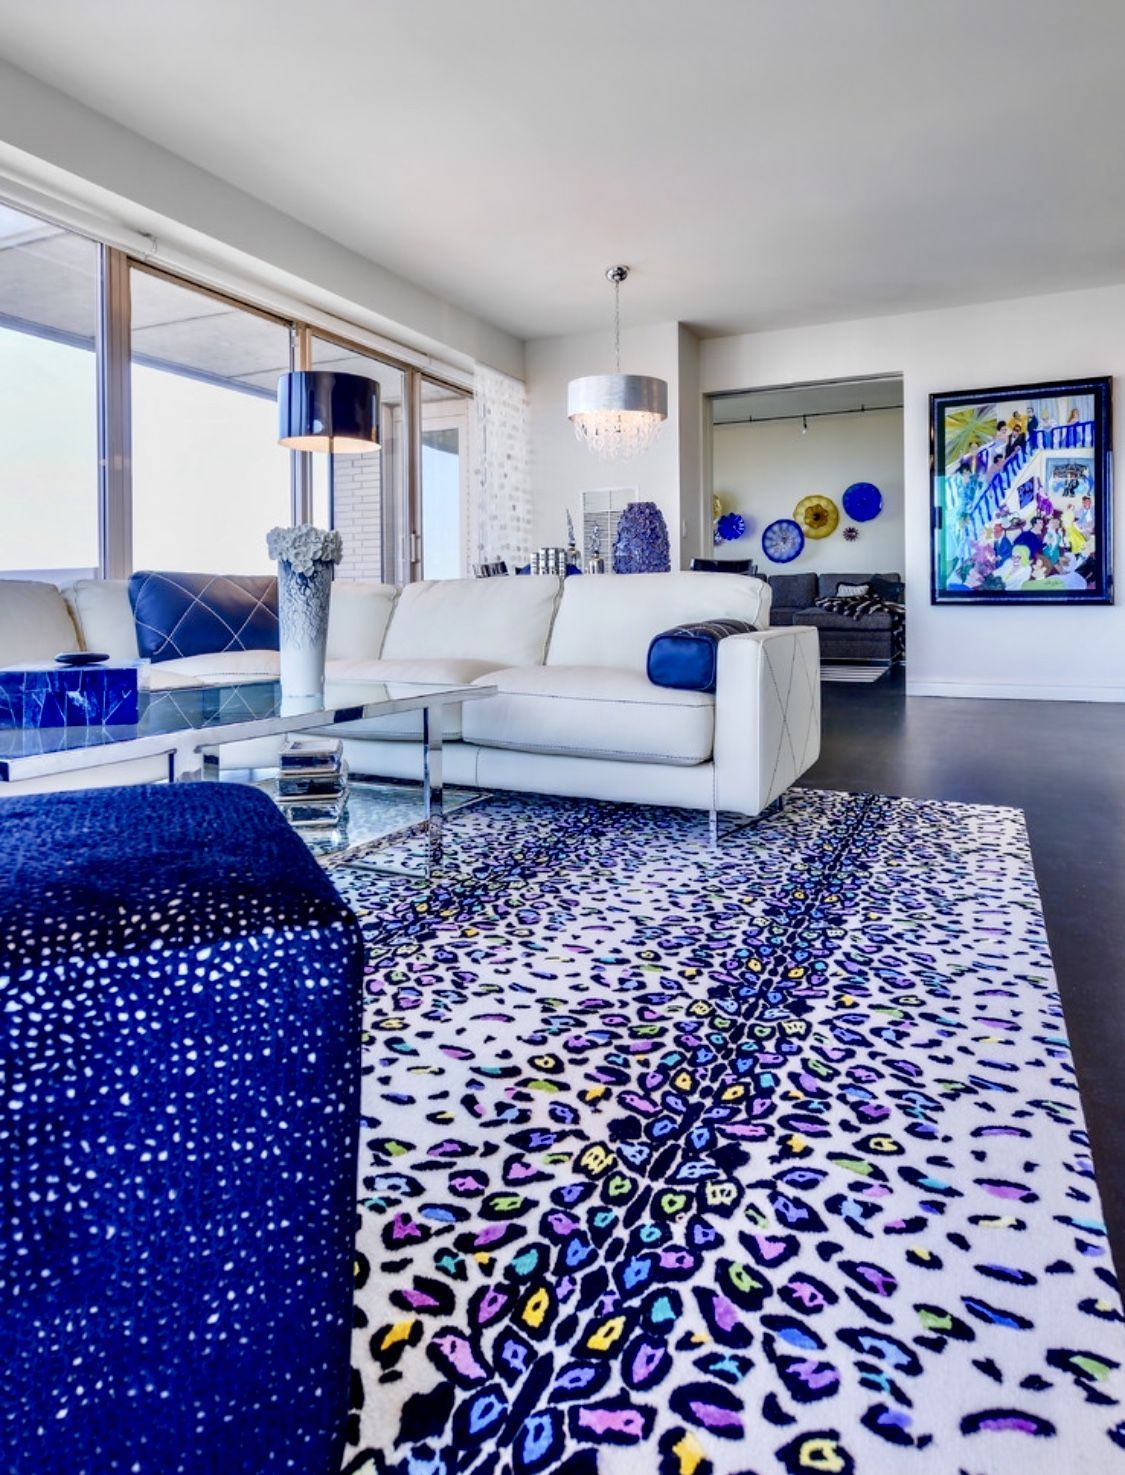 Modern Living Room Decor Cobalt Blue Decor Colorful Royal Blue Sofa Blue Living Room Decor Blue Living Room Luxury Living Room Decor